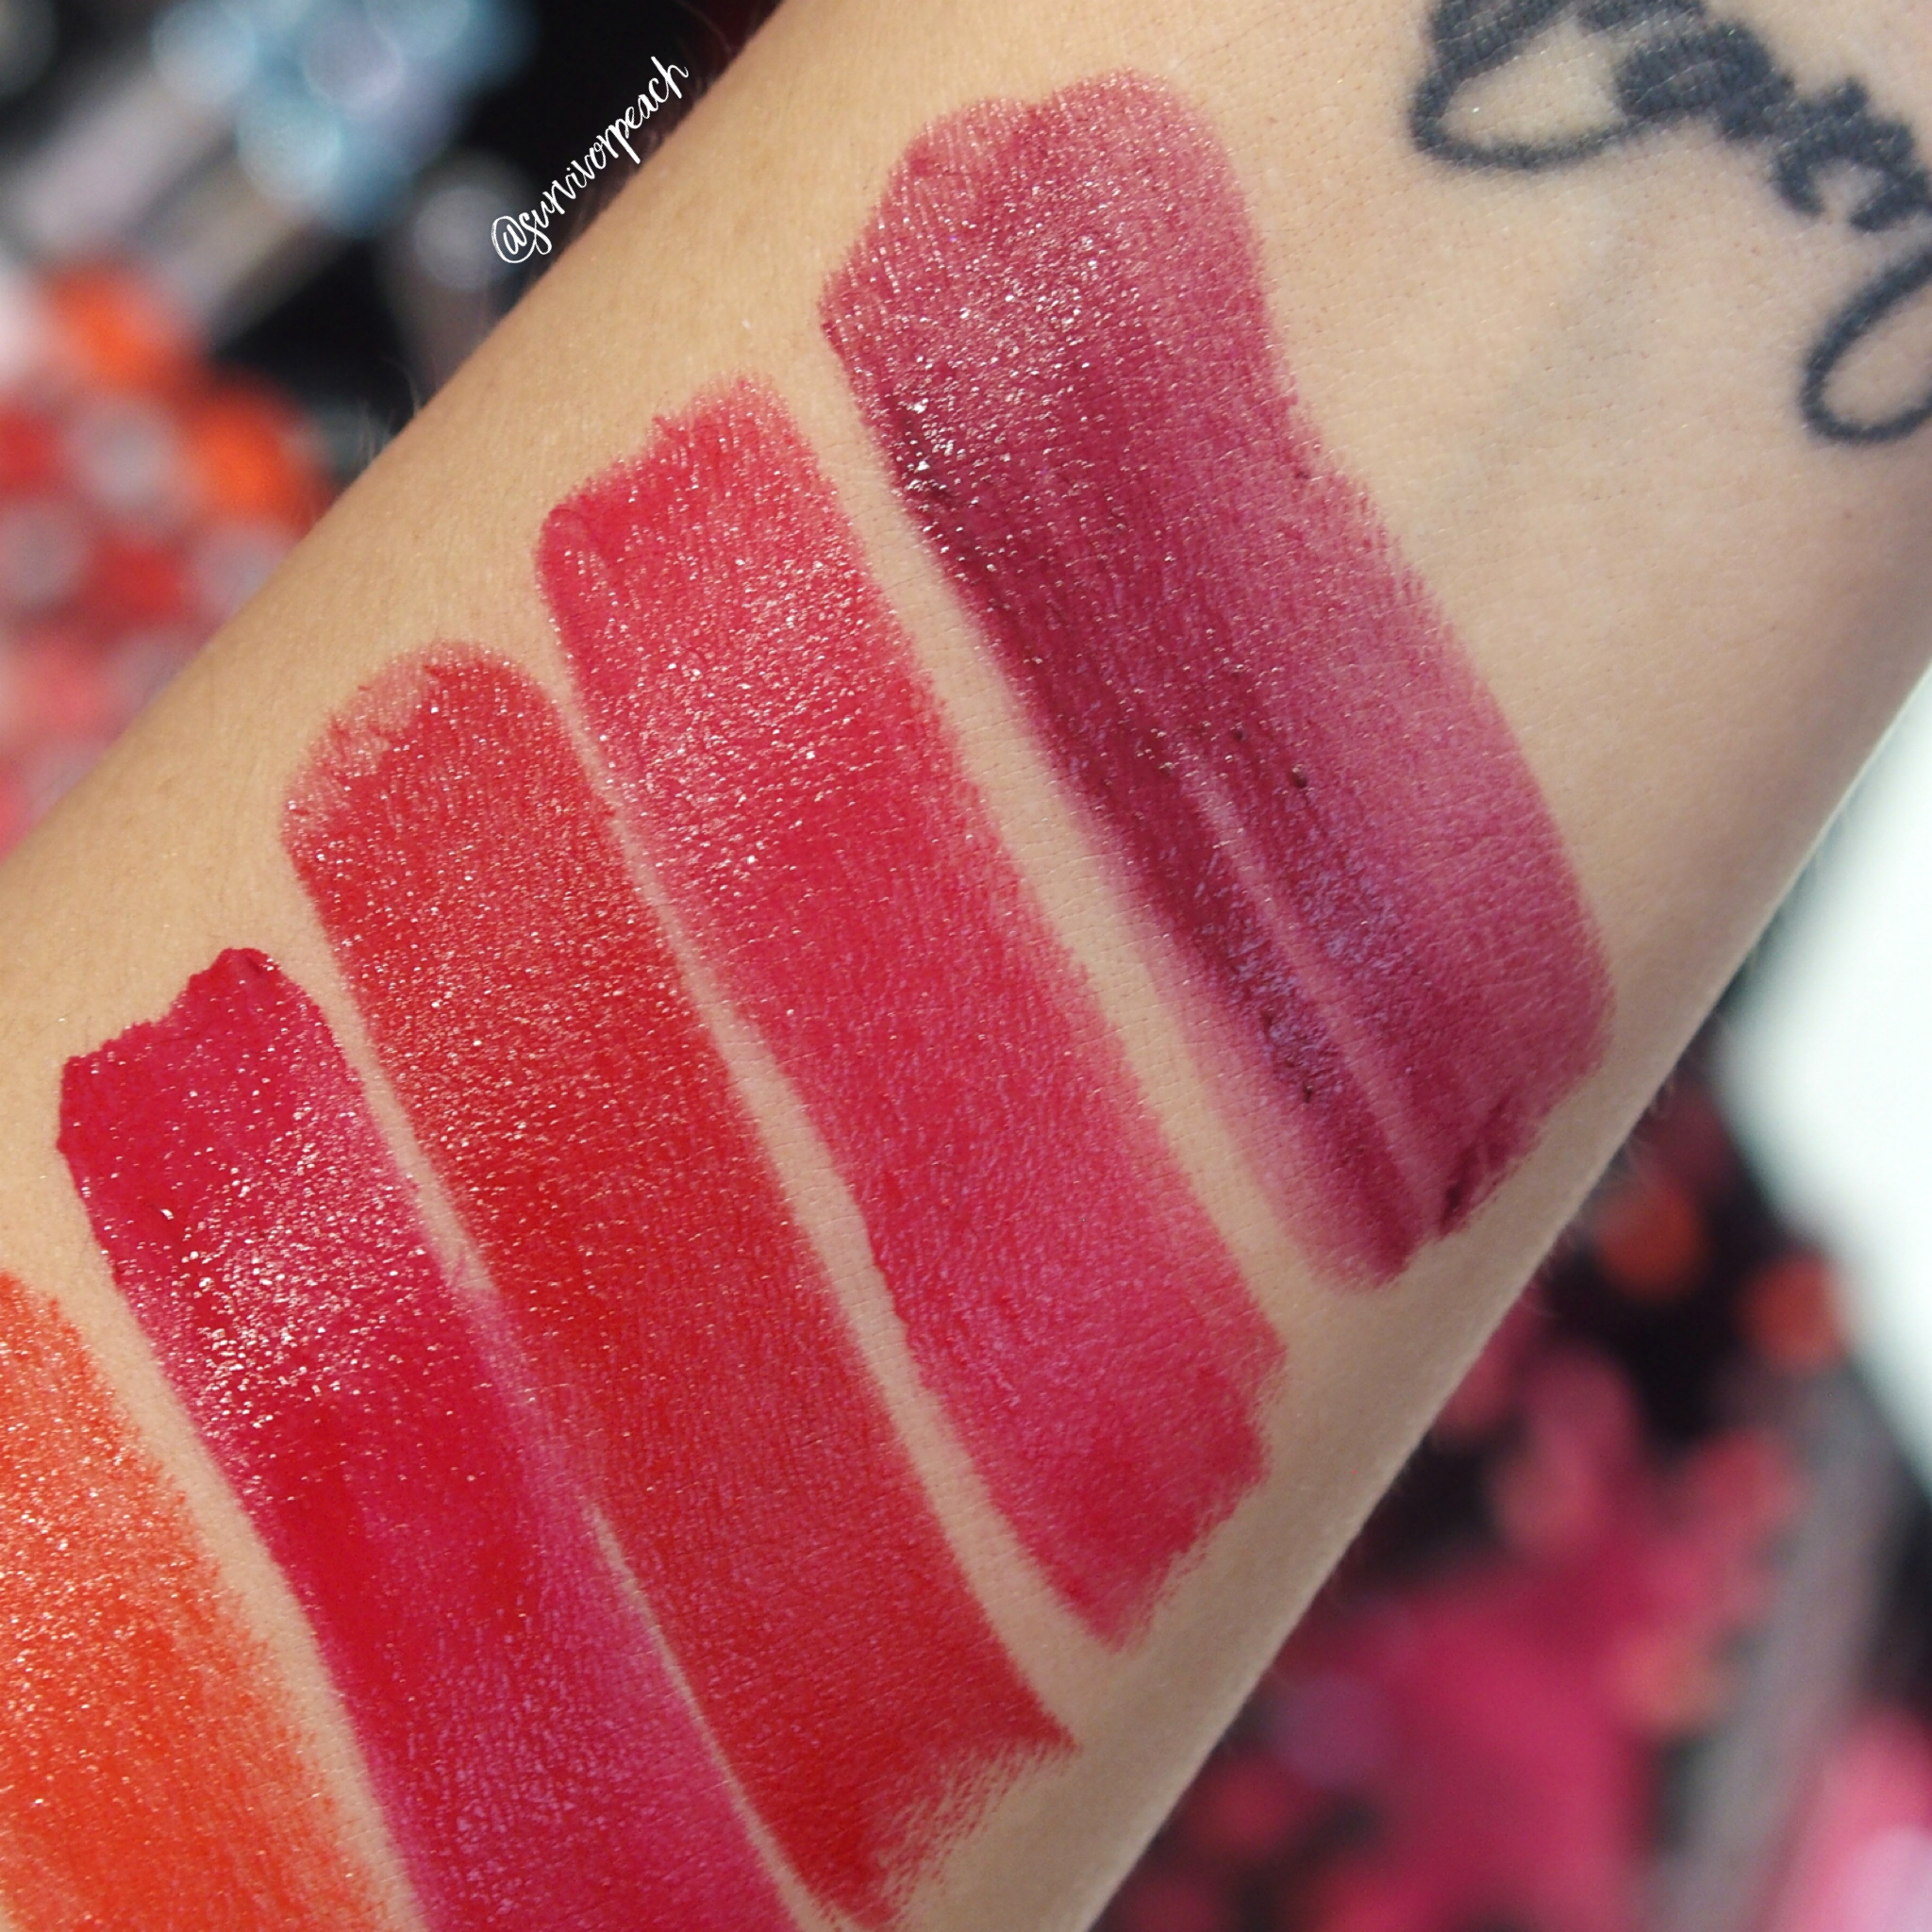 Sephora Collection Lipstick Rouge Lacquer Lipstick swatches - L08 Hear Me Roar, L09 Love Wins, L10 Survivor